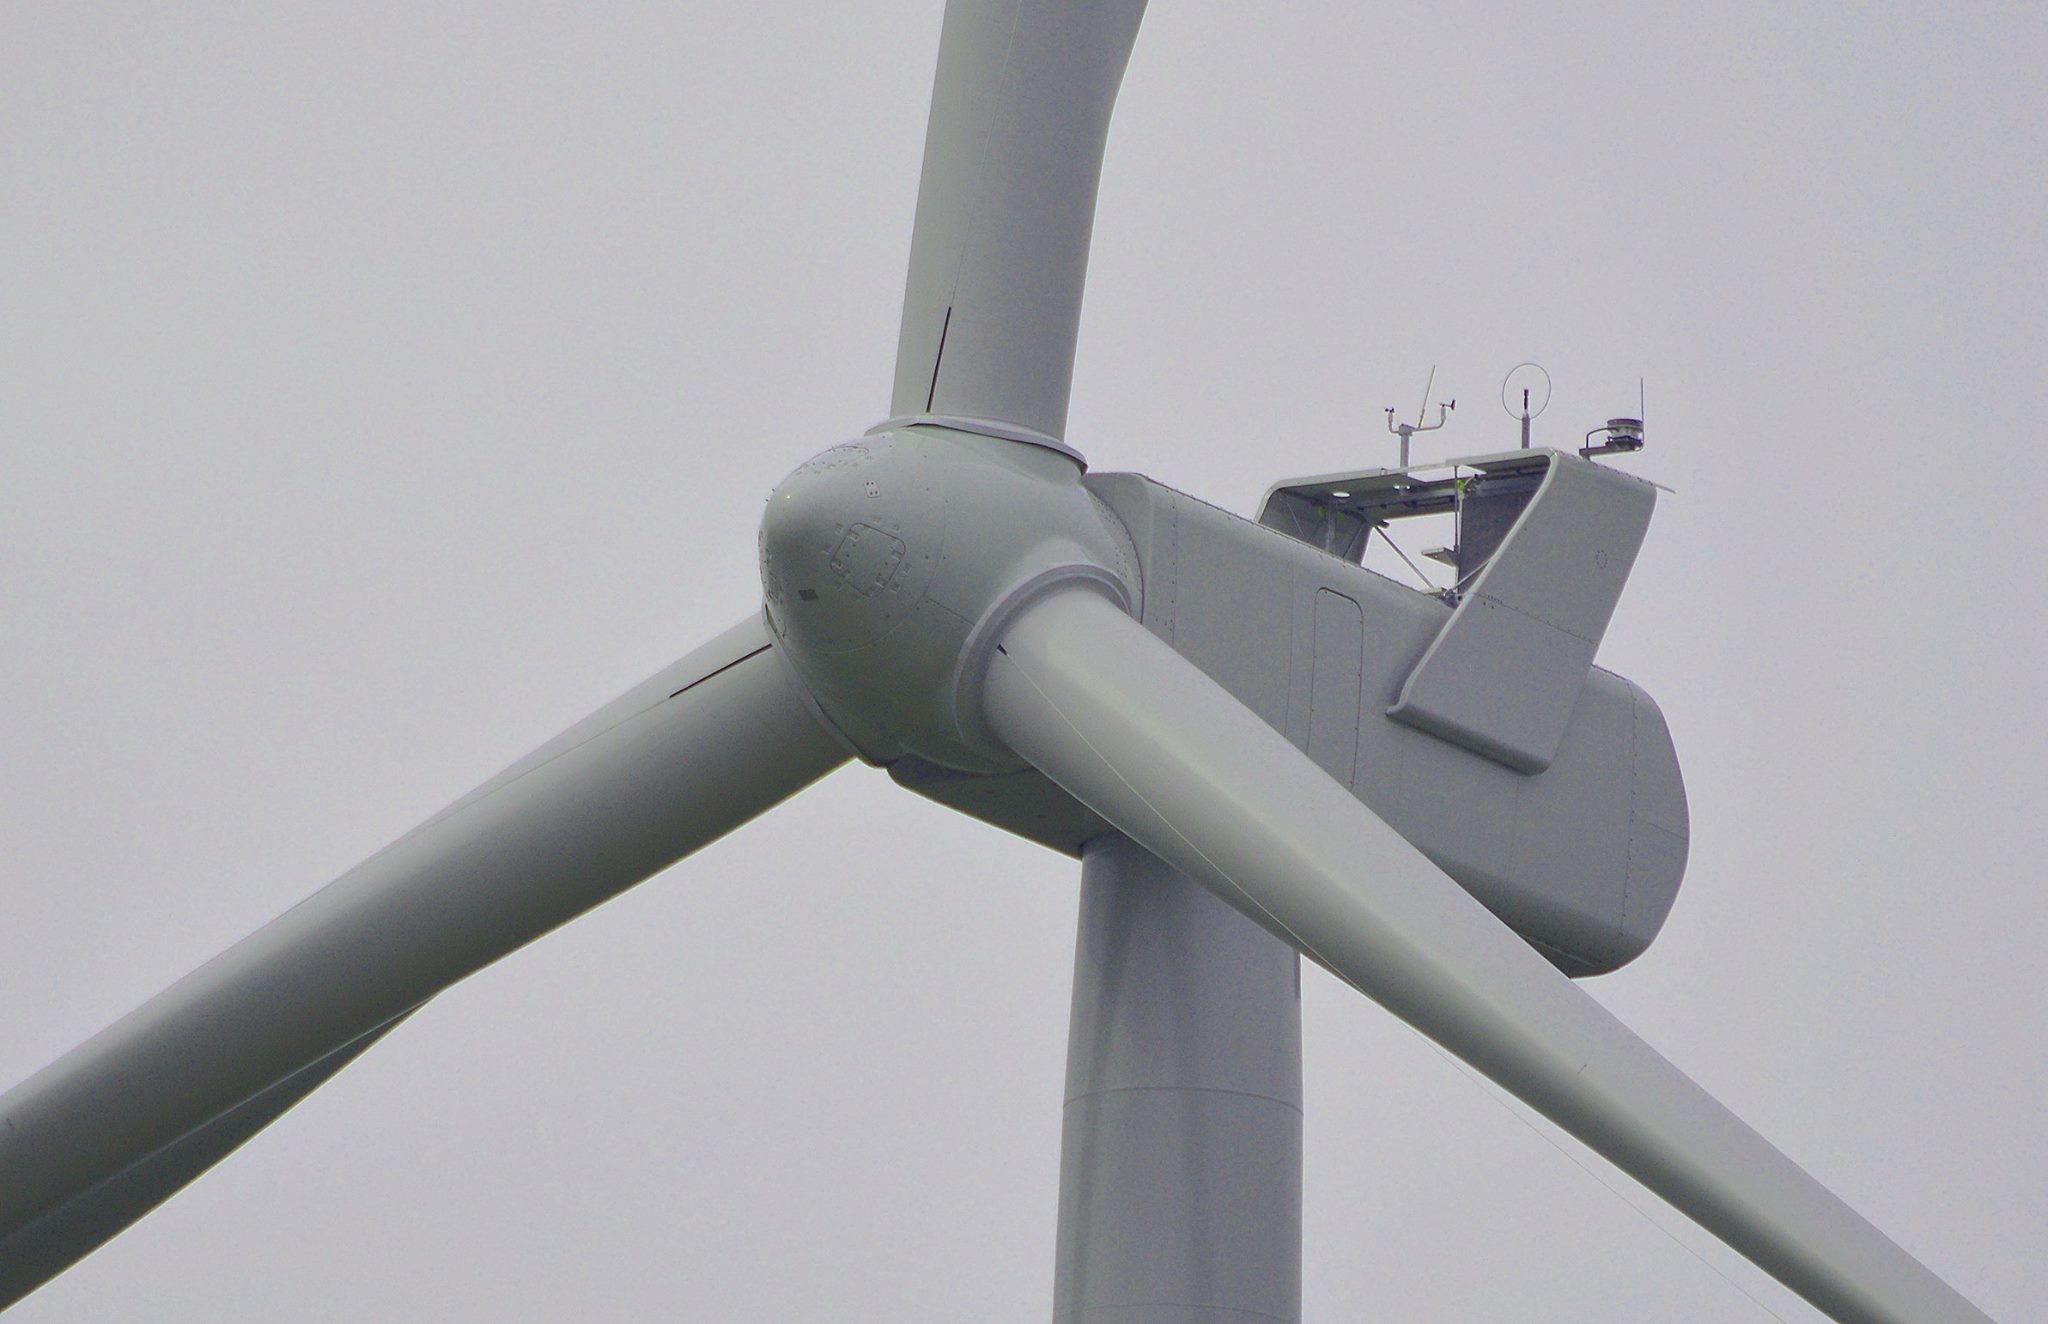 https://0201.nccdn.net/4_2/000/000/008/486/wind-turbine.jpg